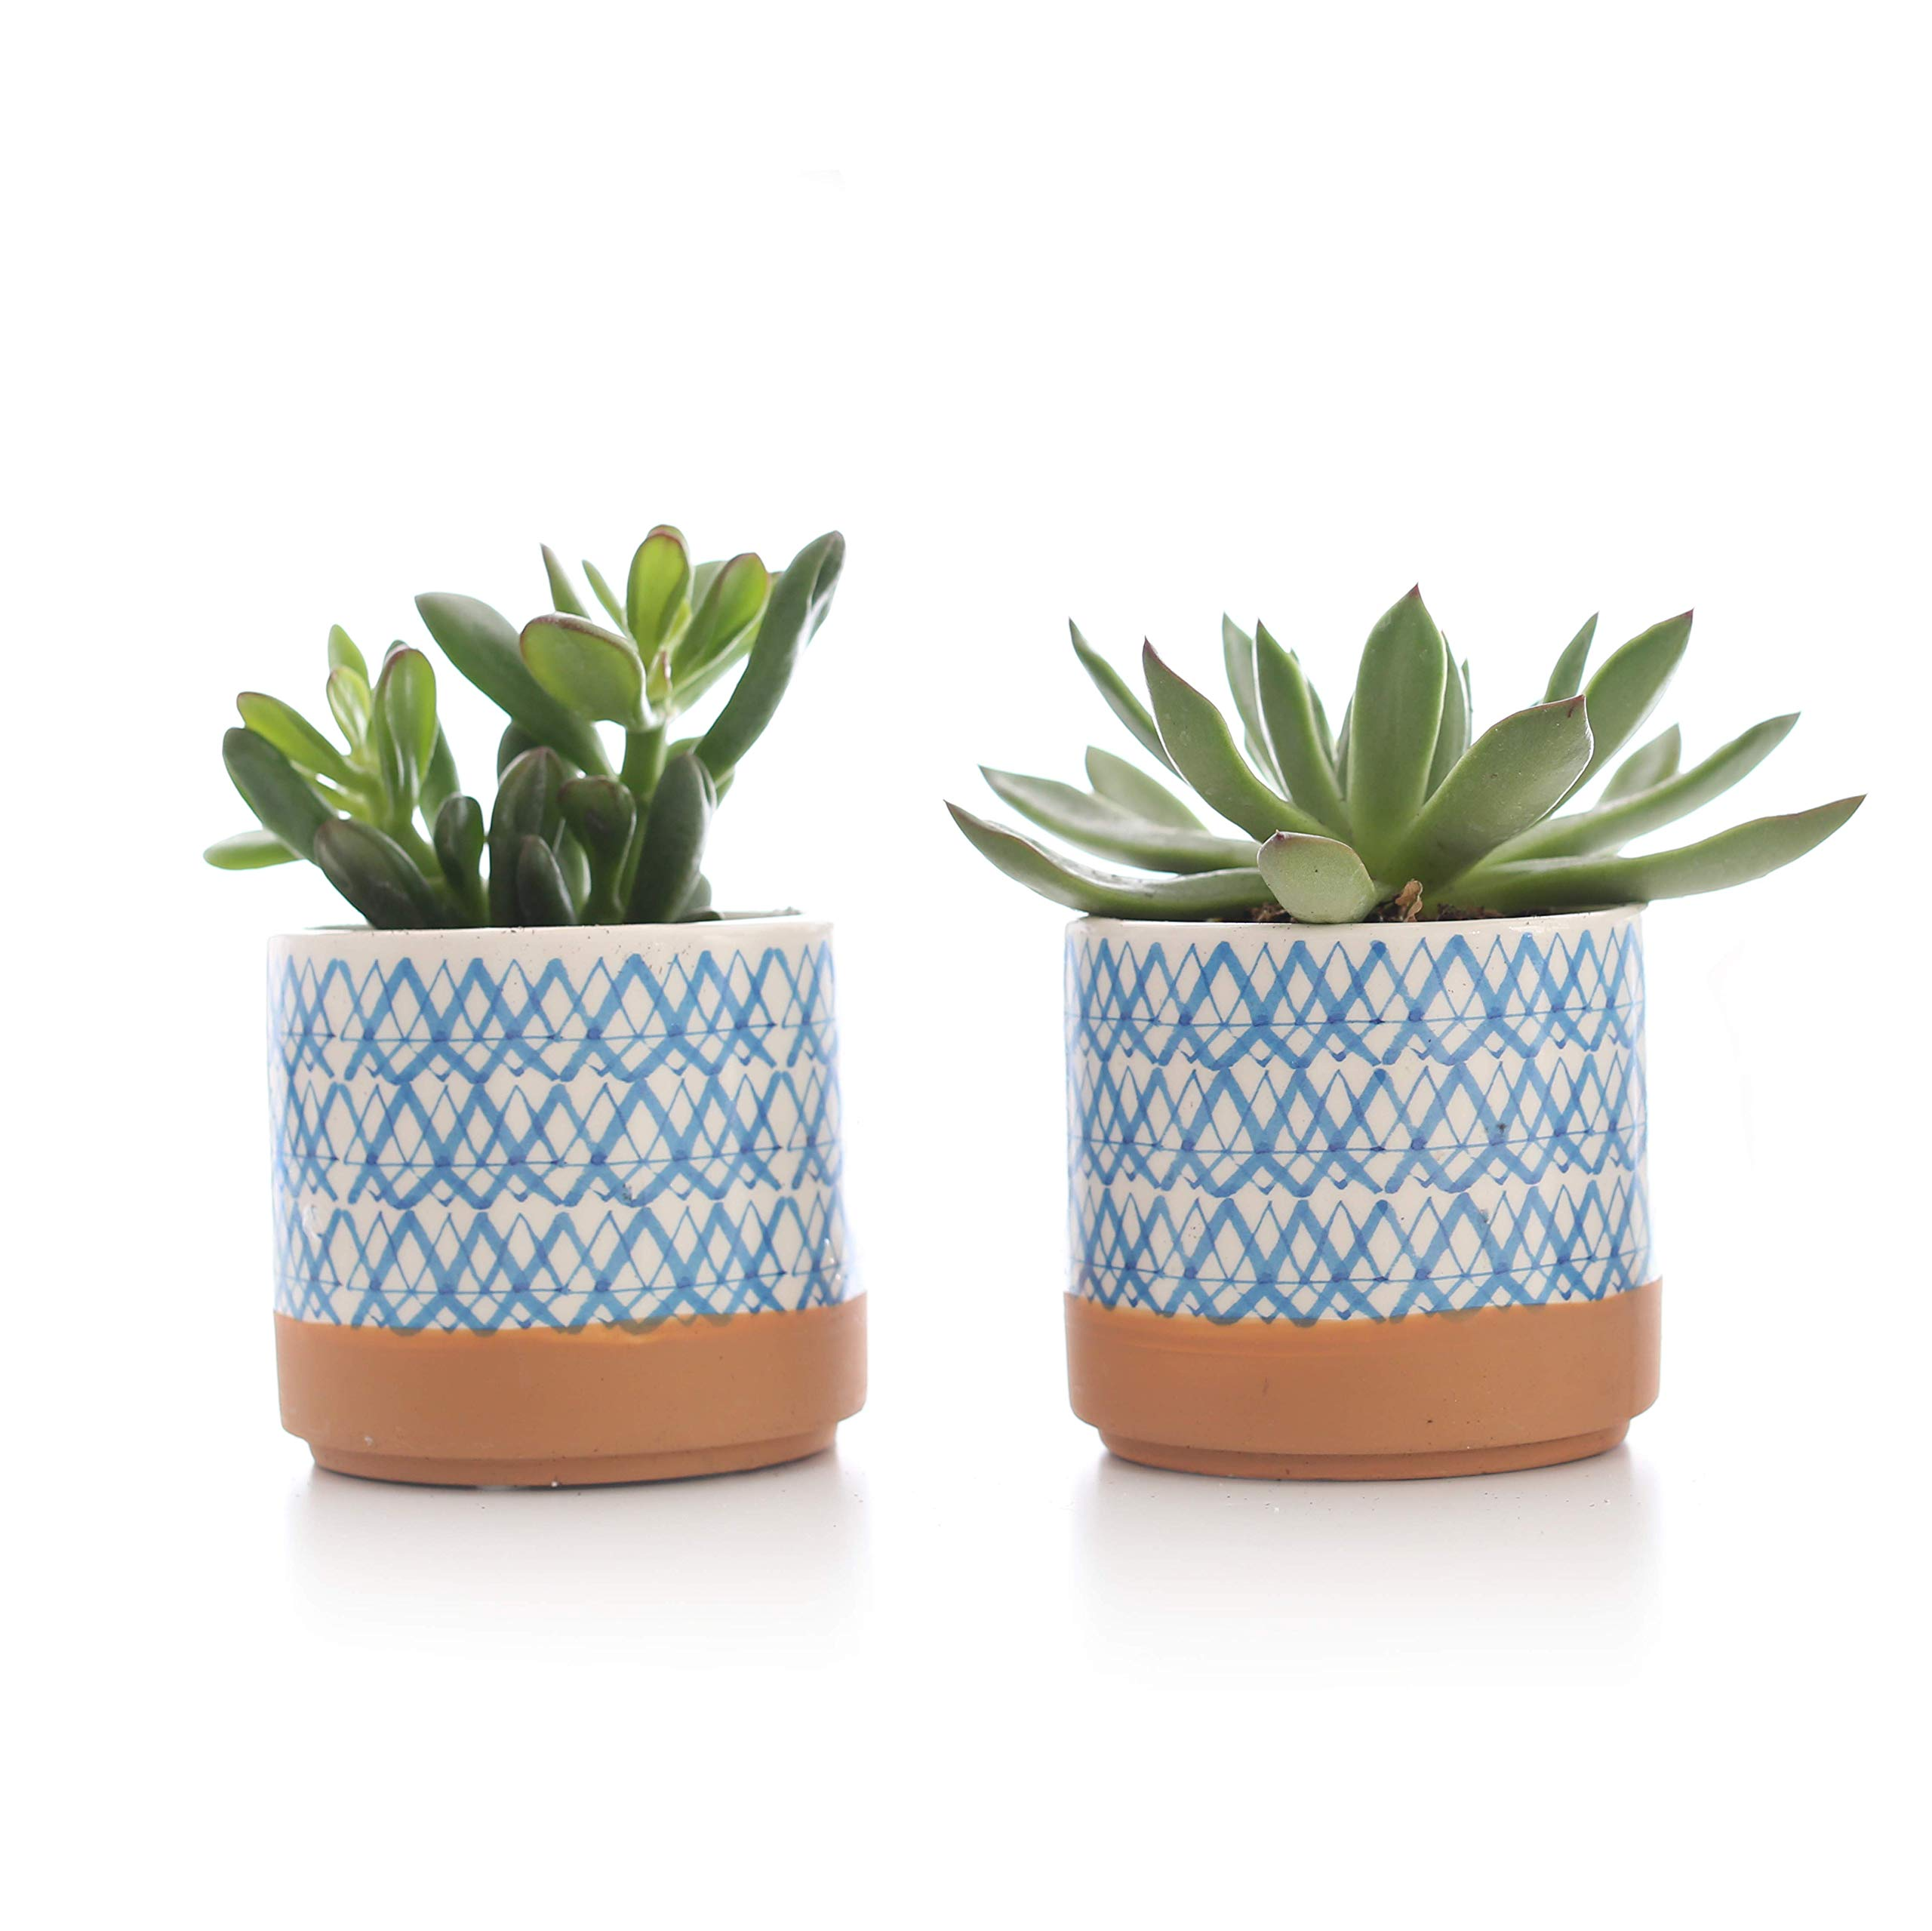 Plants by Post 3.5'' Blue Mini Live Succulent in White Patterned Ceramic Pot (Set of 2)